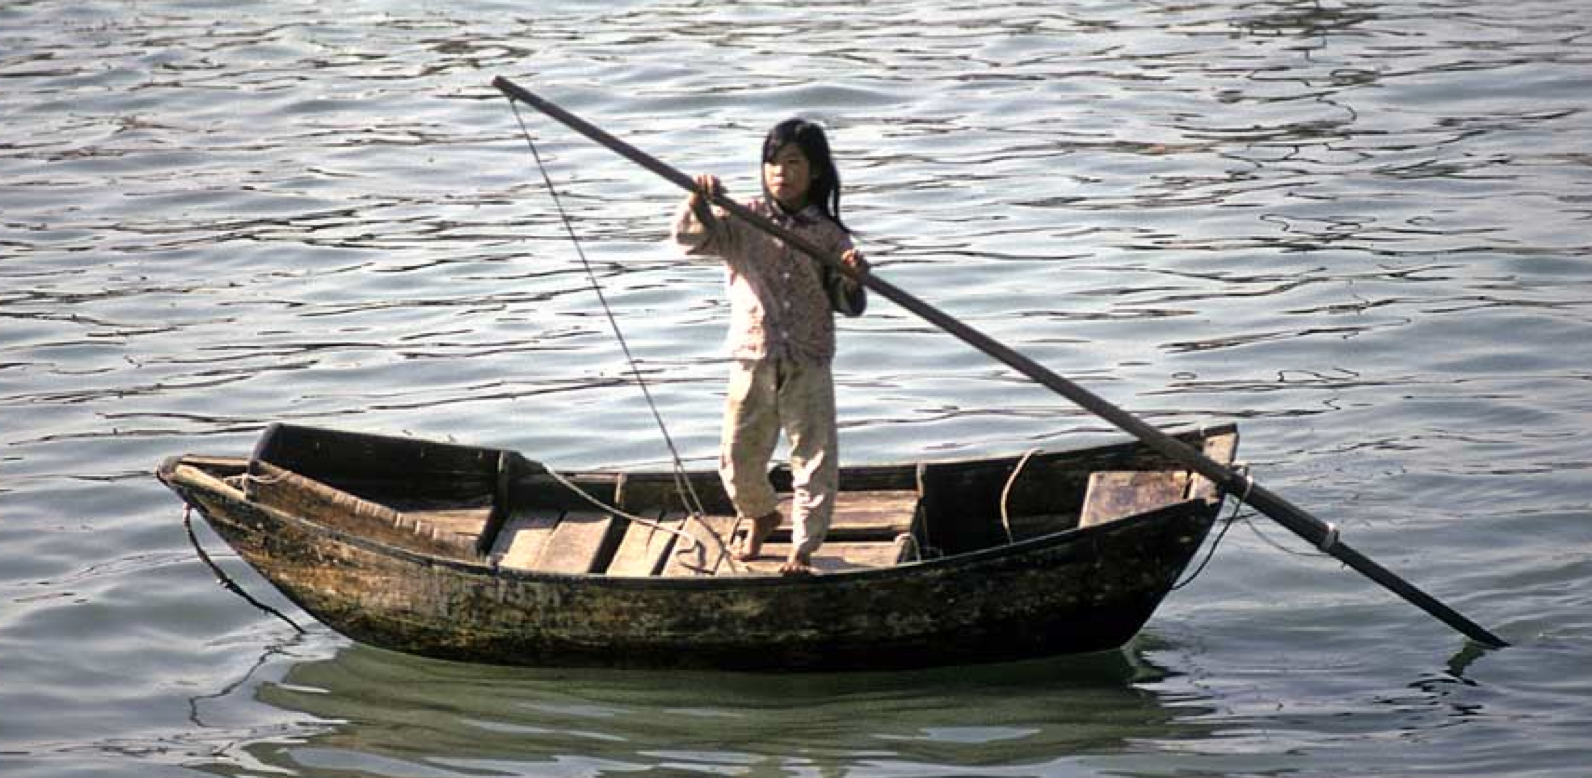 building junk boats | Need Chinese Junk Hull Boat Plans - Page 2 - Boat Design Forums | CHINESE ...